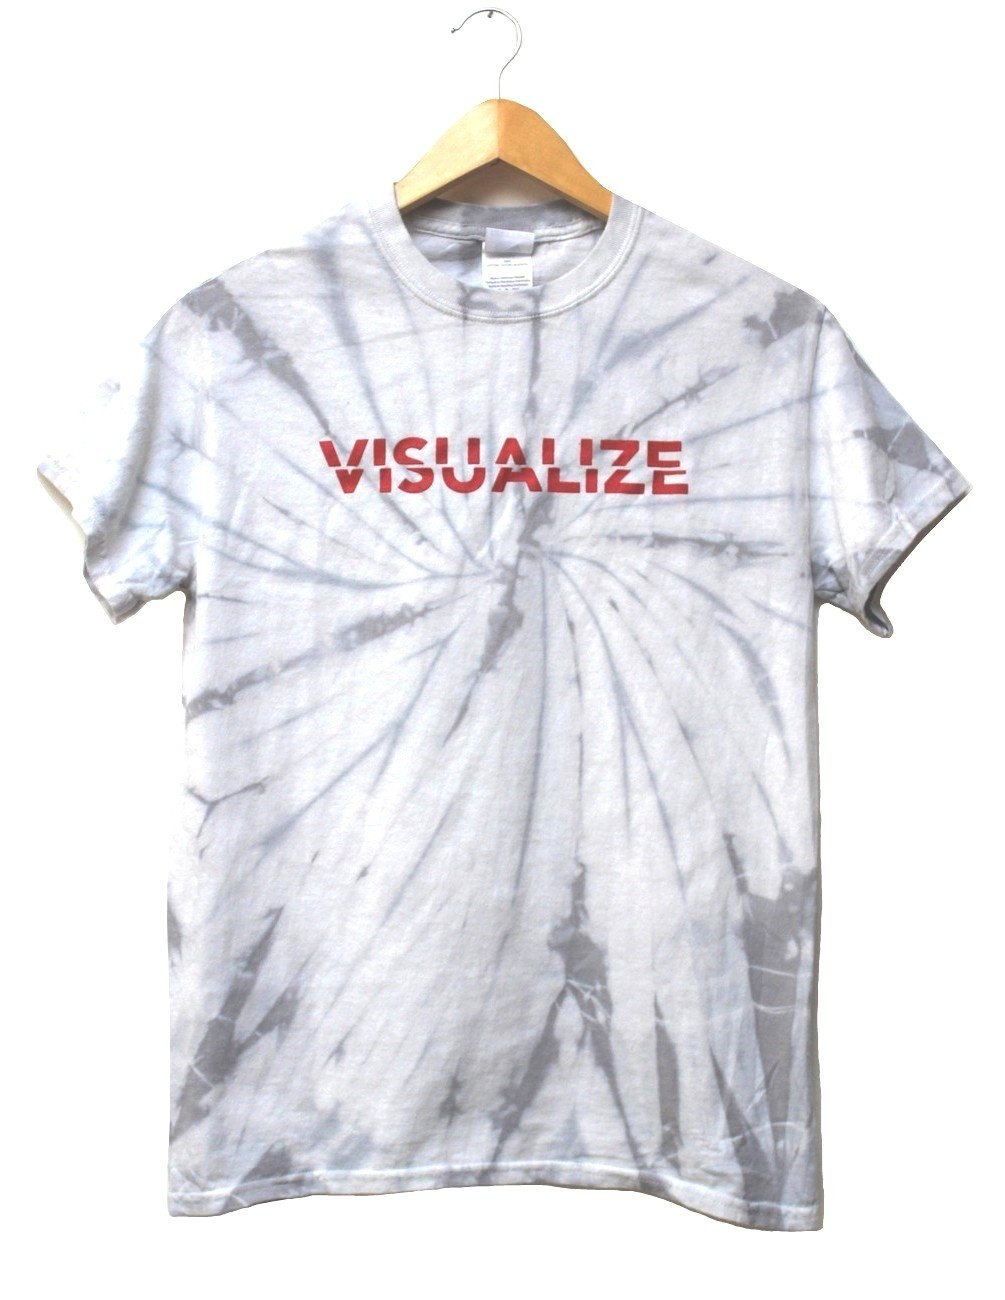 Image of Visualize Silver Gray Tie-Dye Graphic Unisex Tee